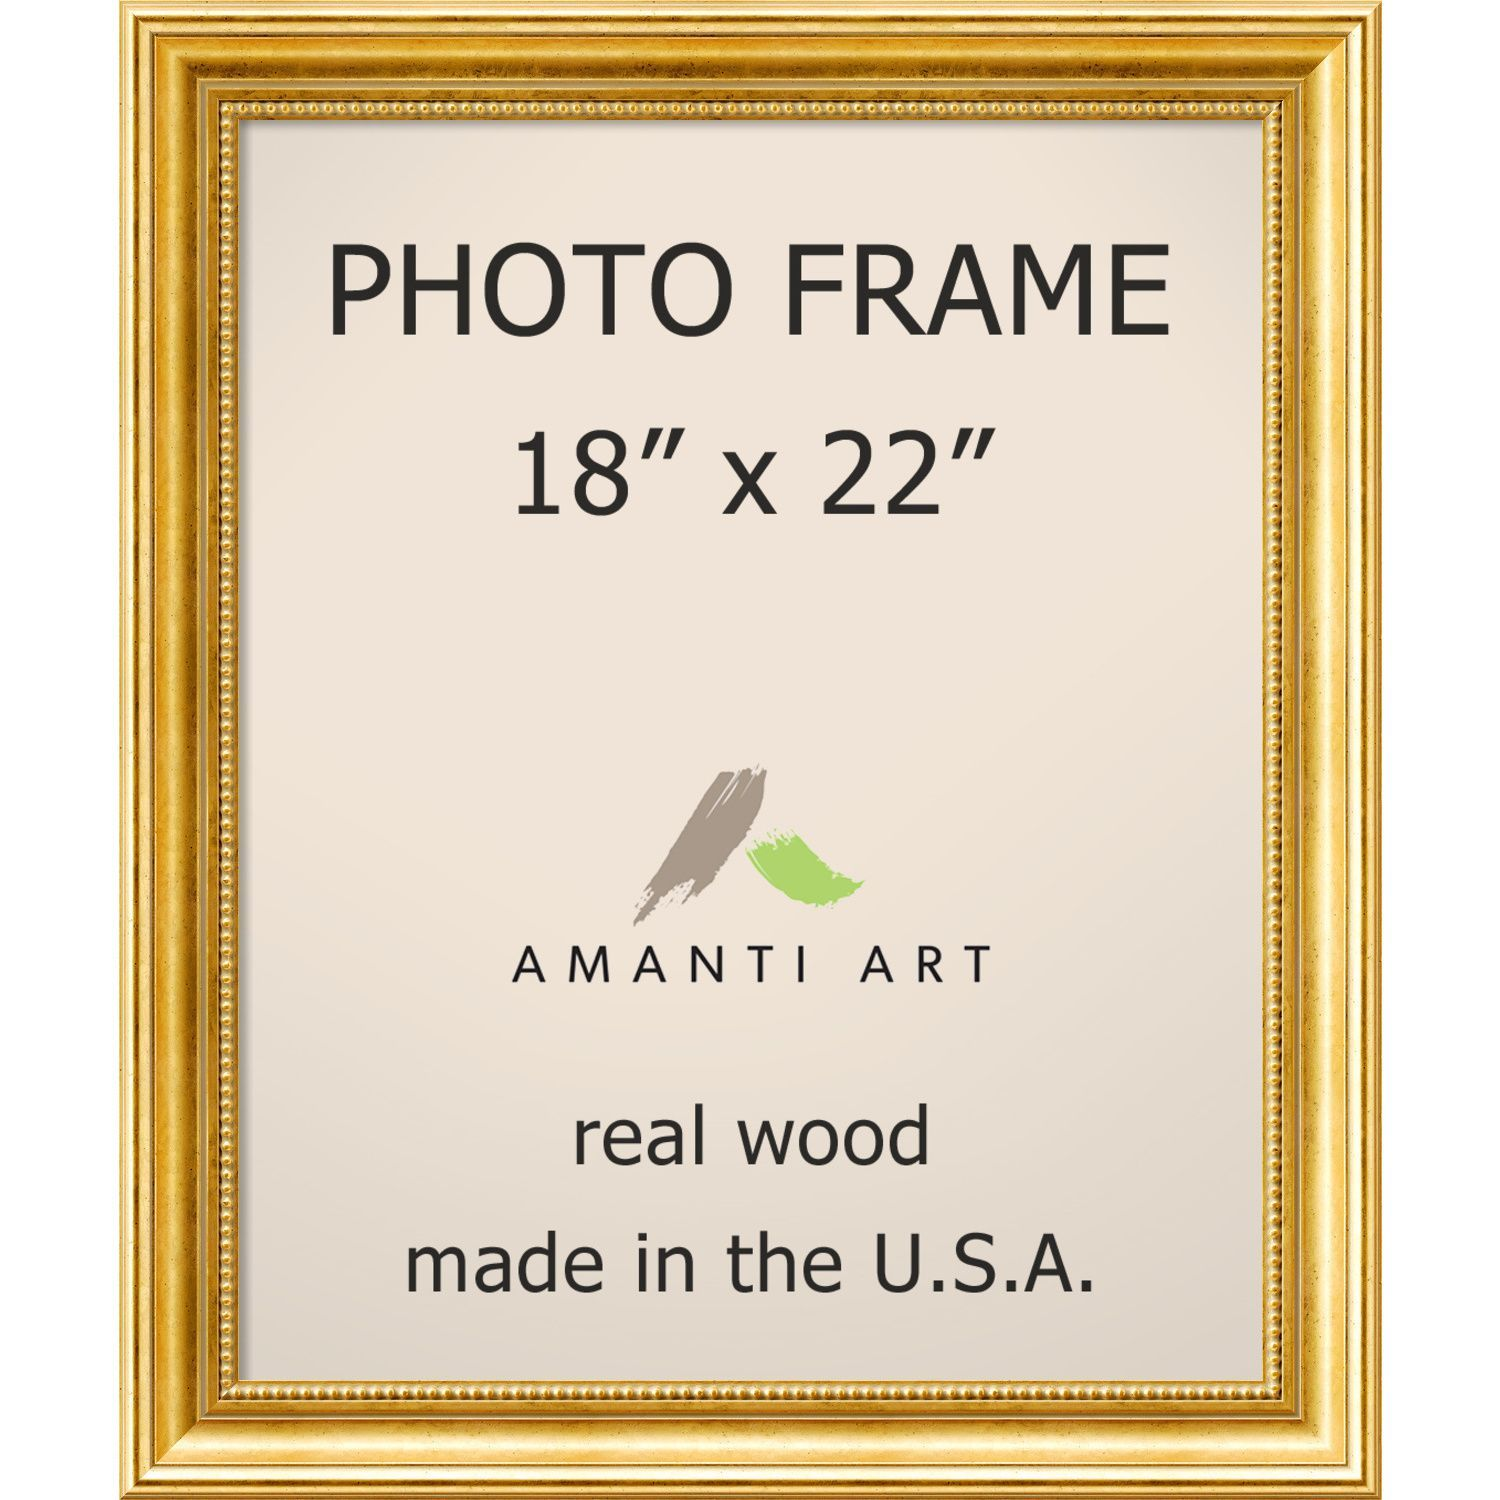 Townhouse Gold Photo Frame 21 X 25 Inch Gold Photo Frame 18x22